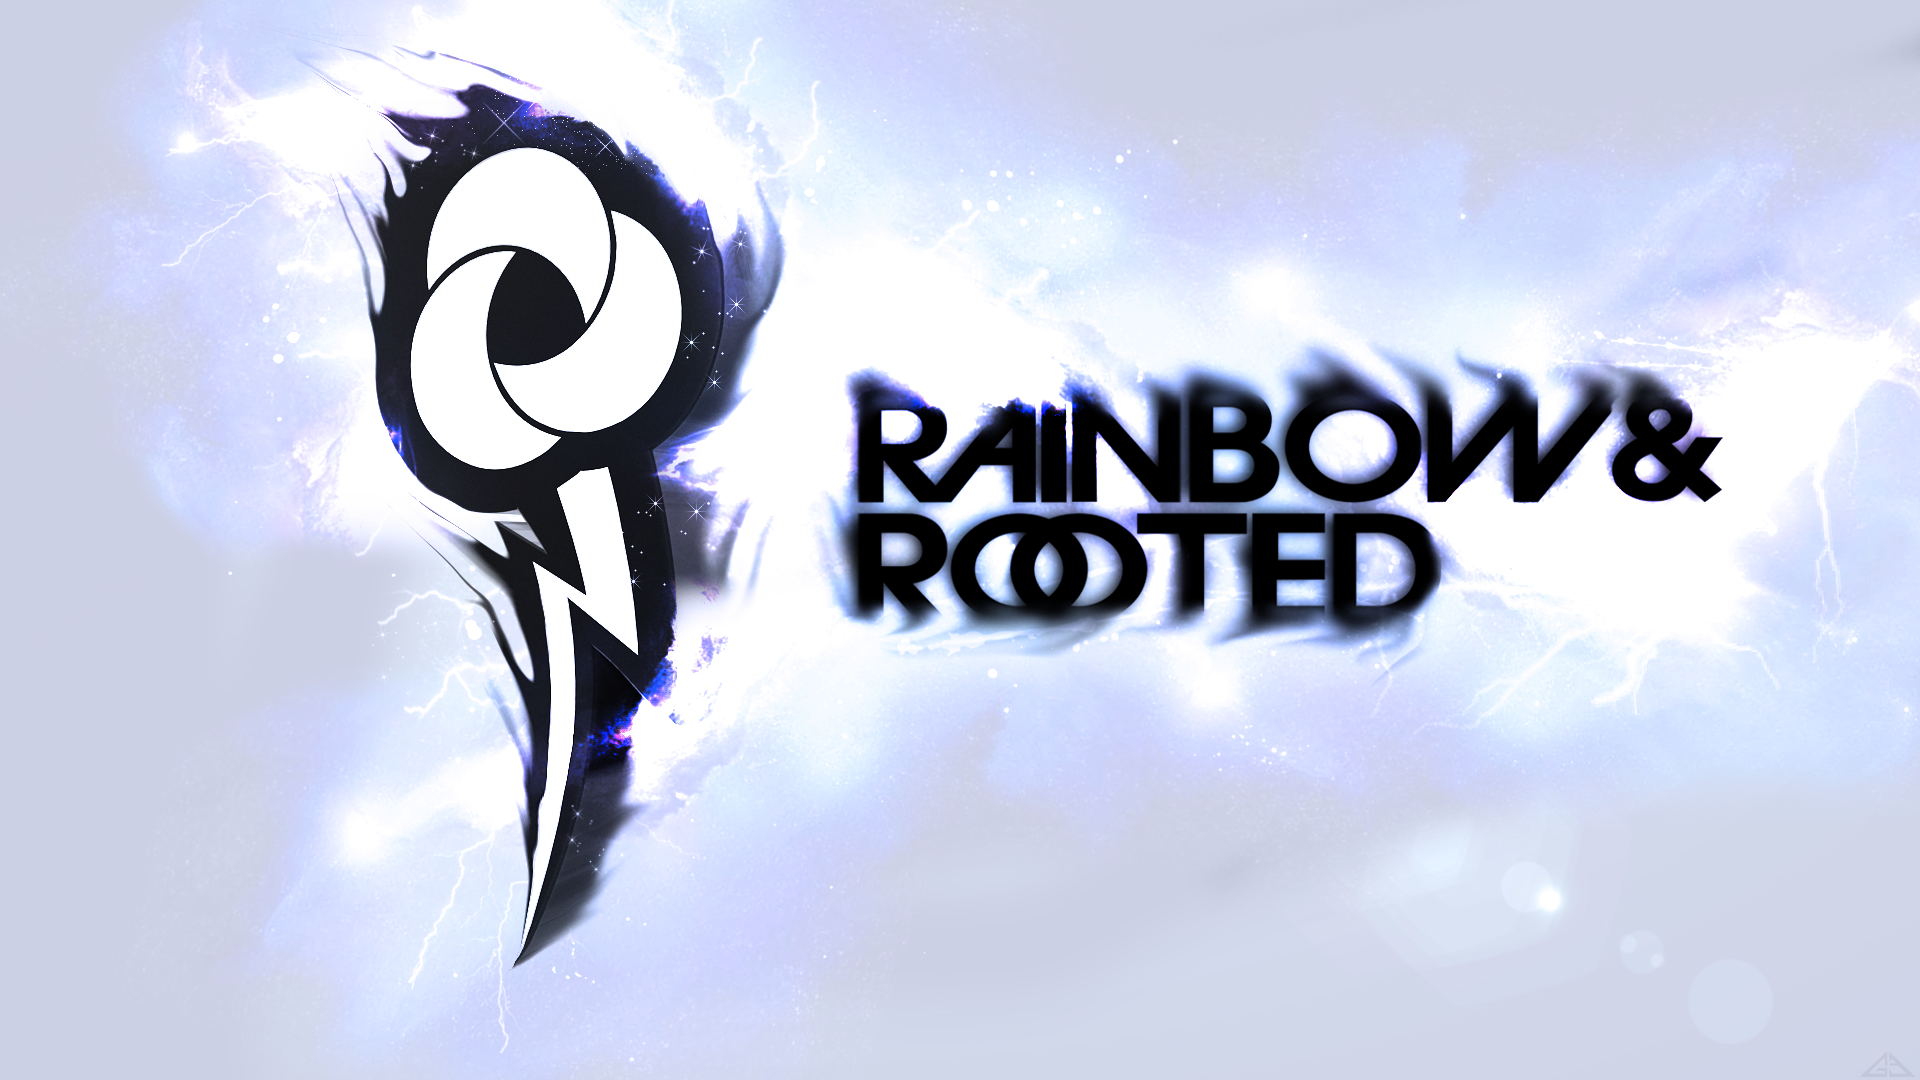 Rainbow and Rooted wallpaper by GizzyEST and WMill